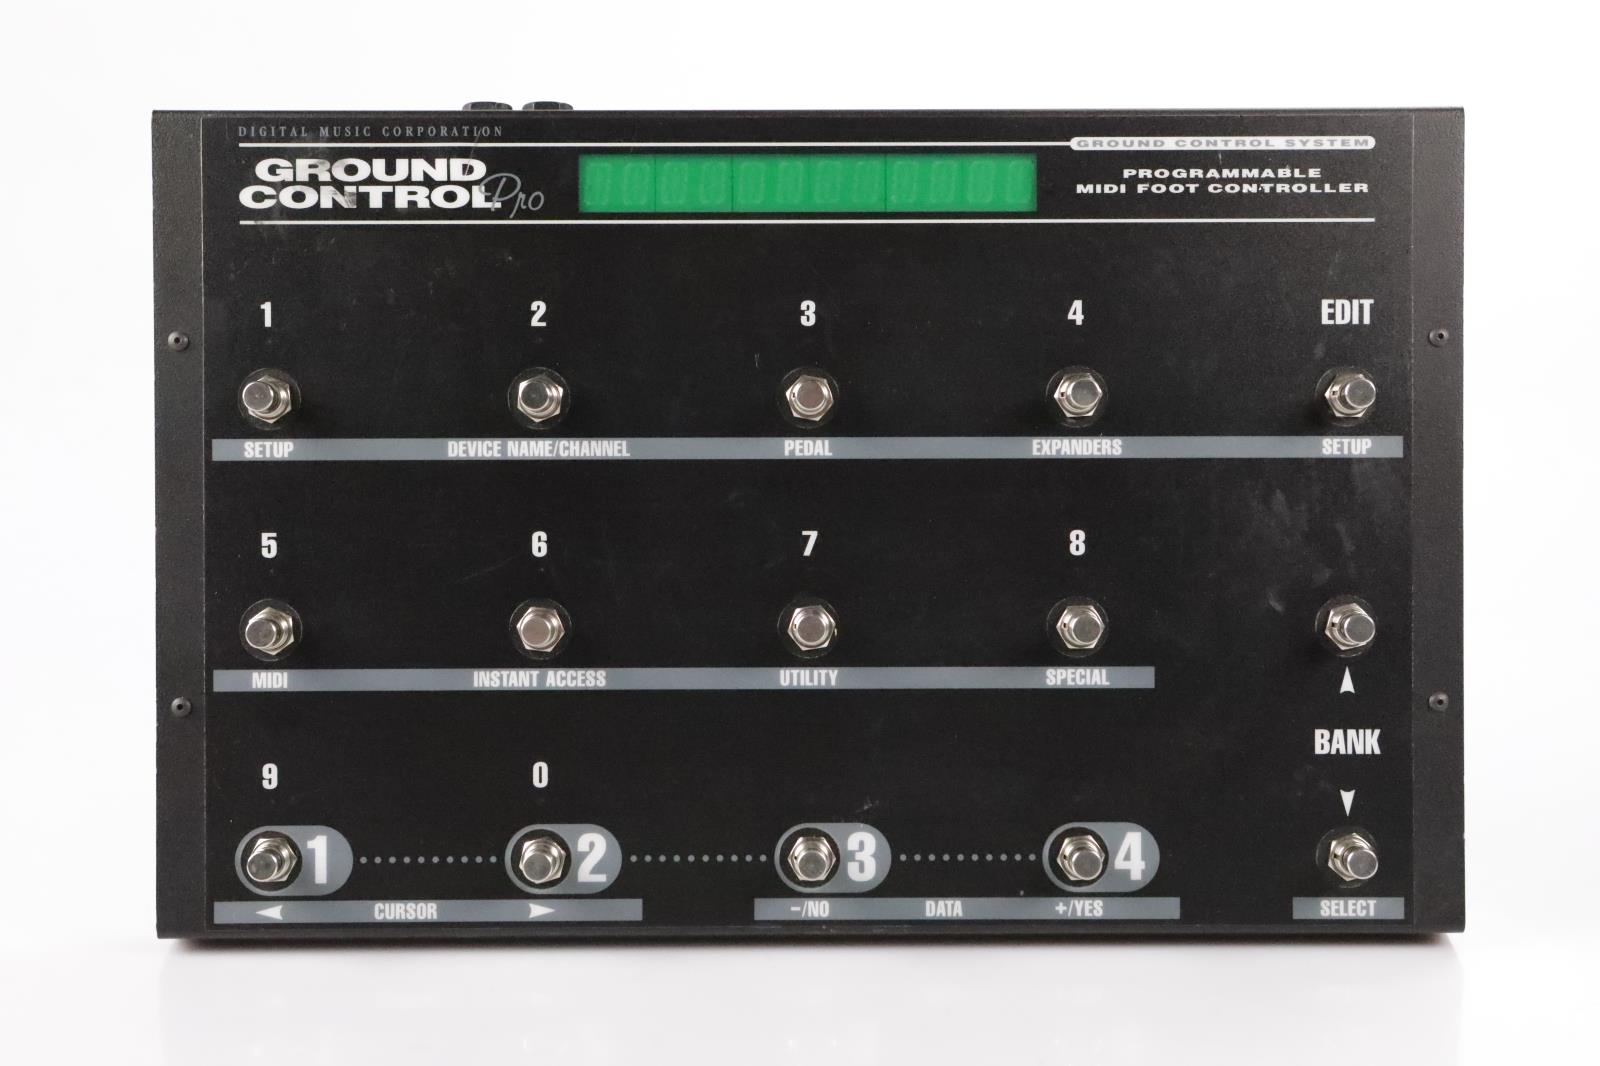 Digital Music Corporation Ground Control Pro Owned by Vivian Campbell #34335